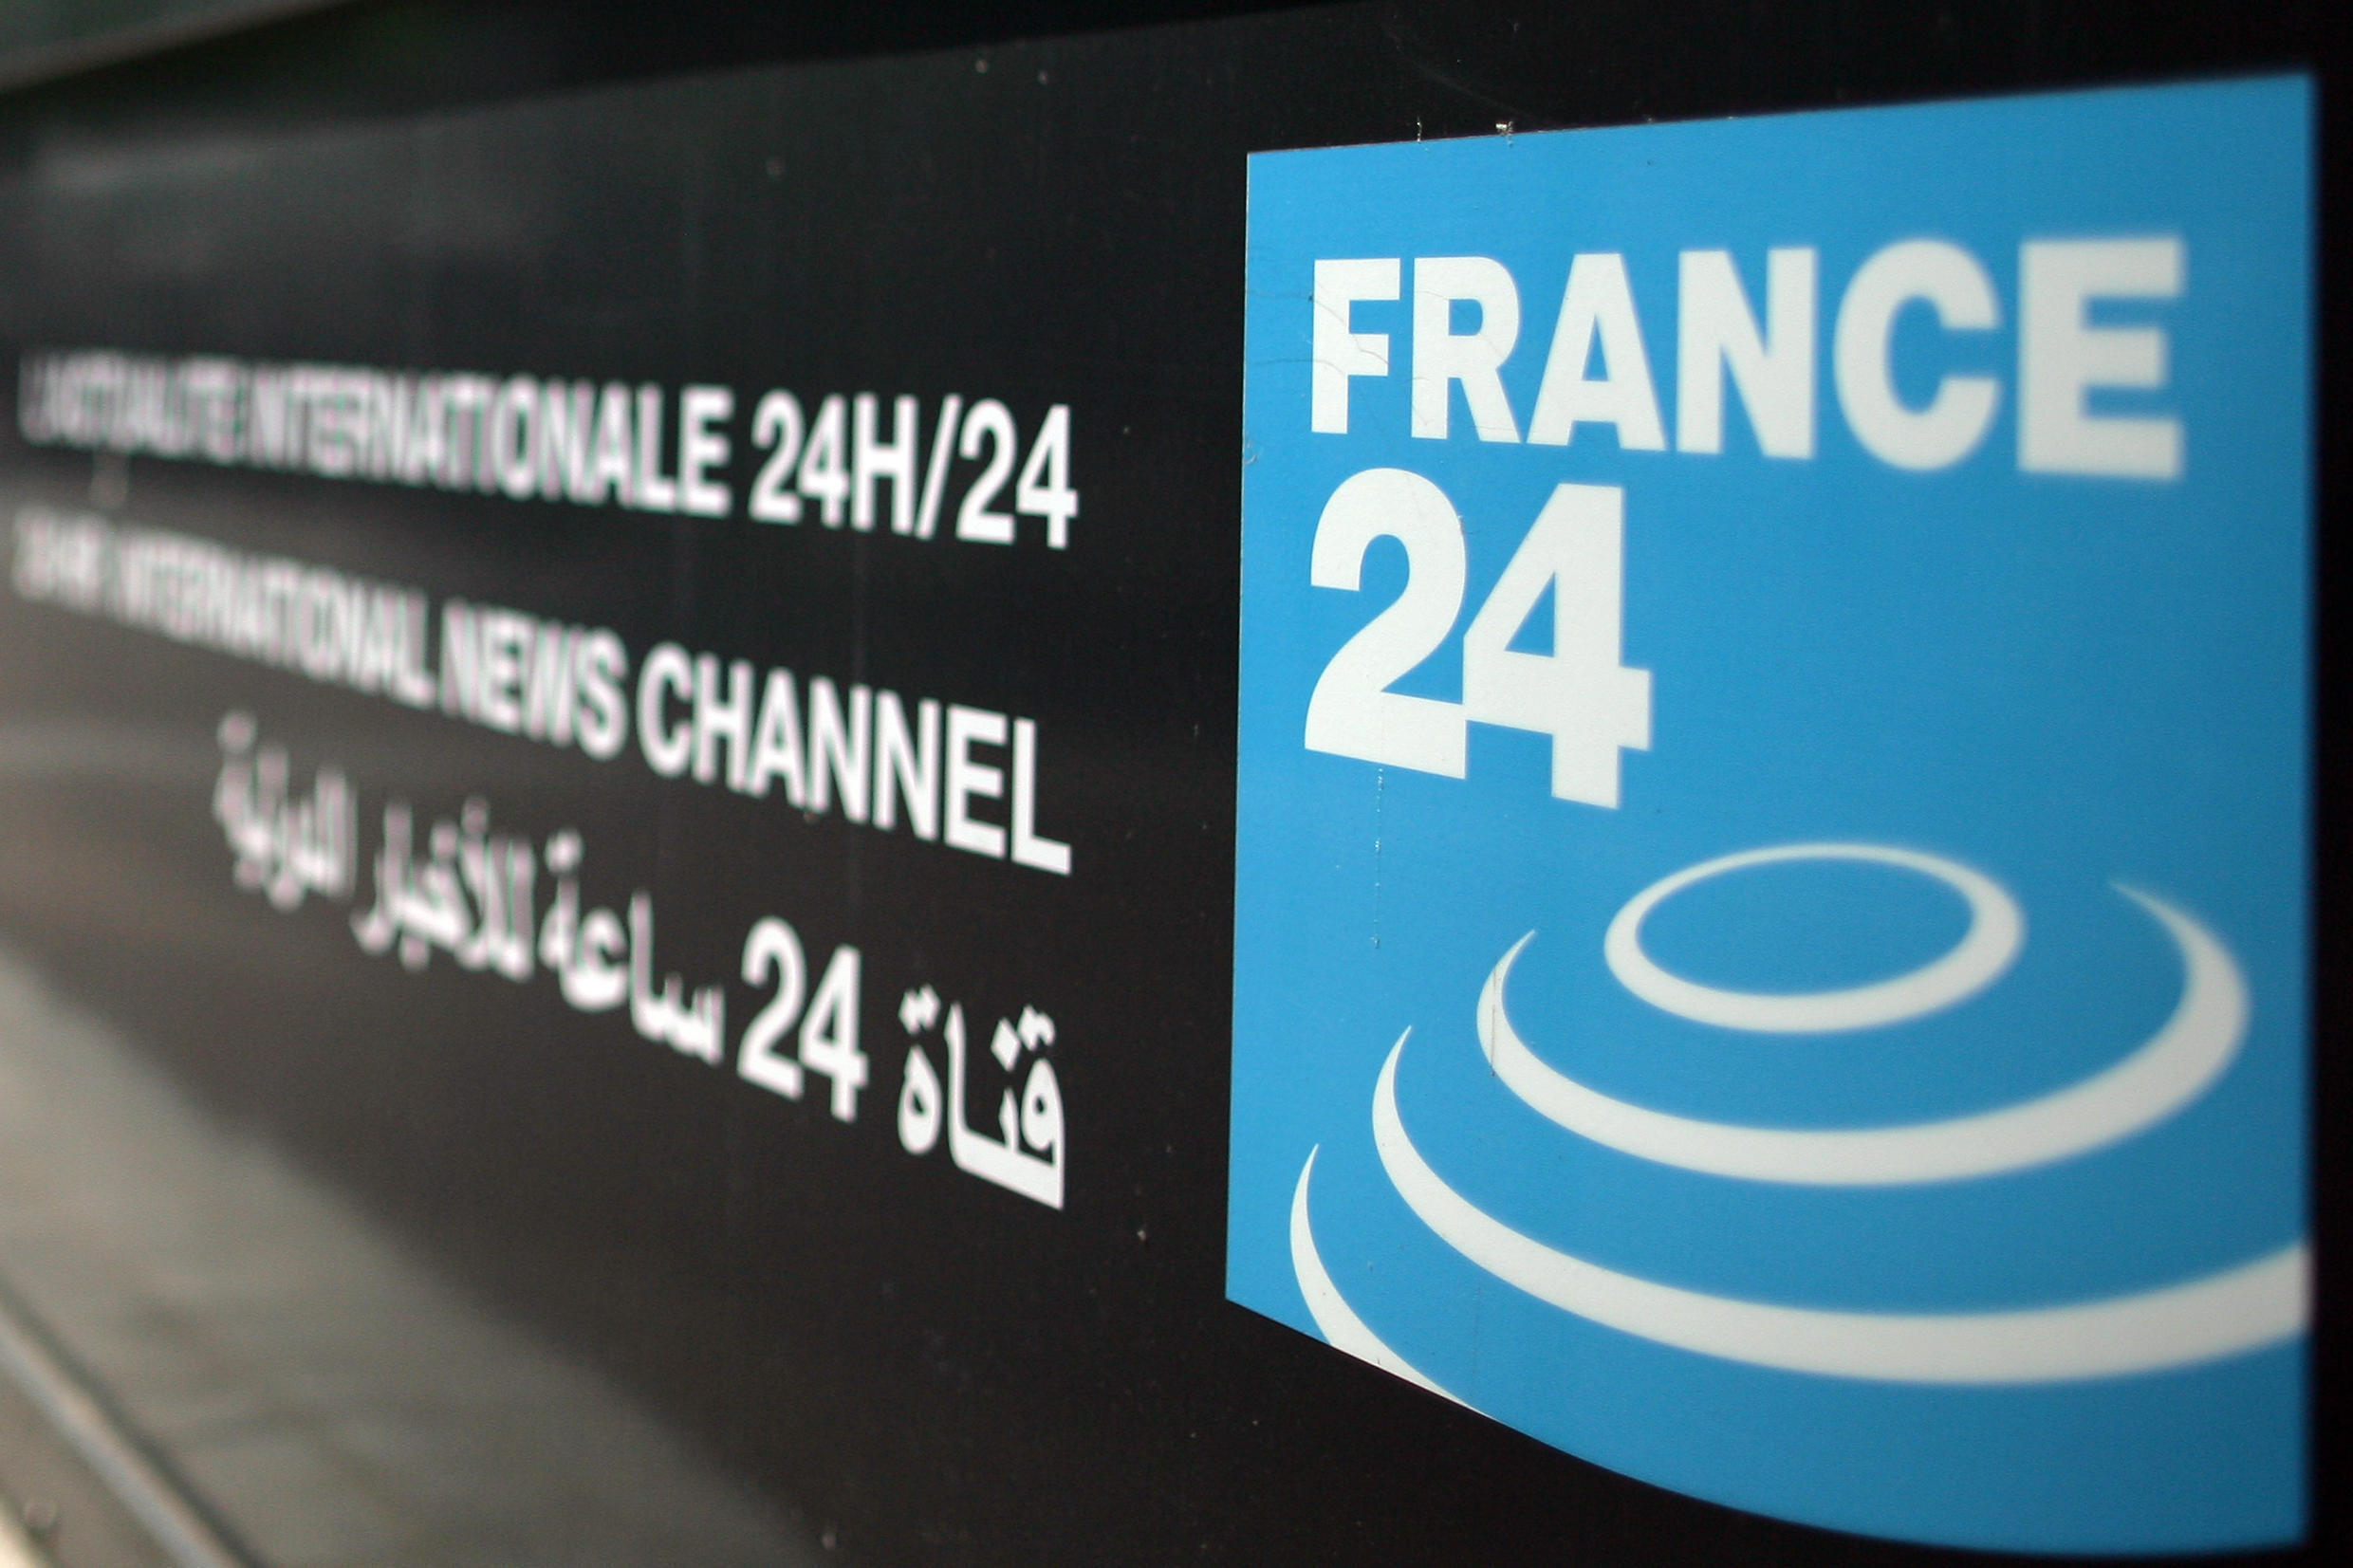 France 24 said Algerian authorities had given the channel a final warning on March 13, over its 'coverage of Friday marches' of the long-running Hirak anti-government protest movement